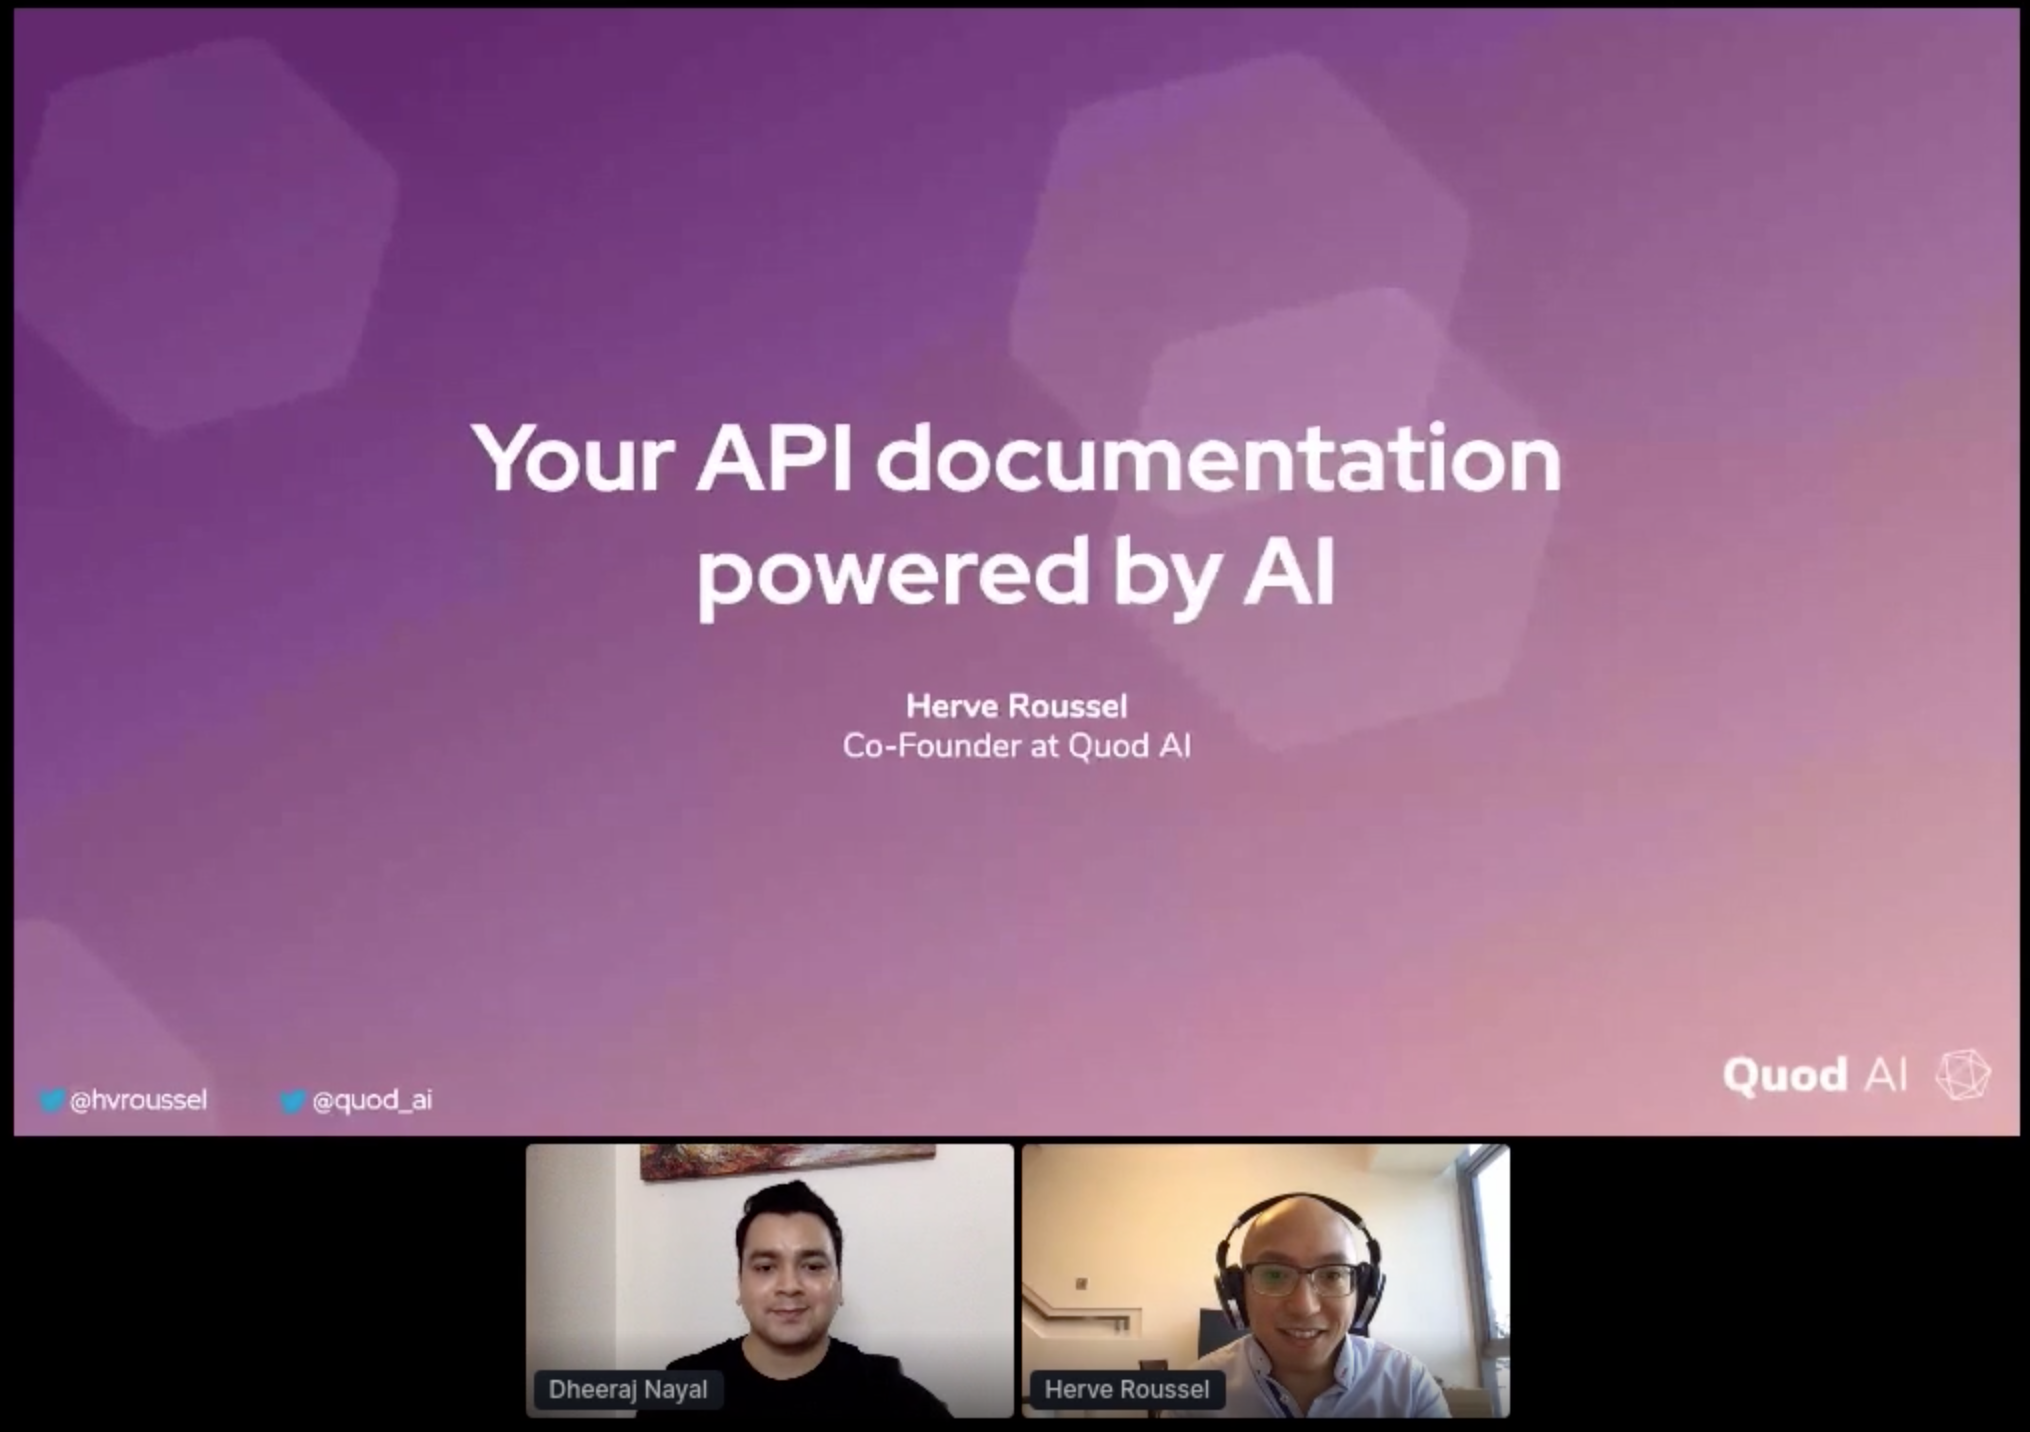 Better API documentation is made possible with AI